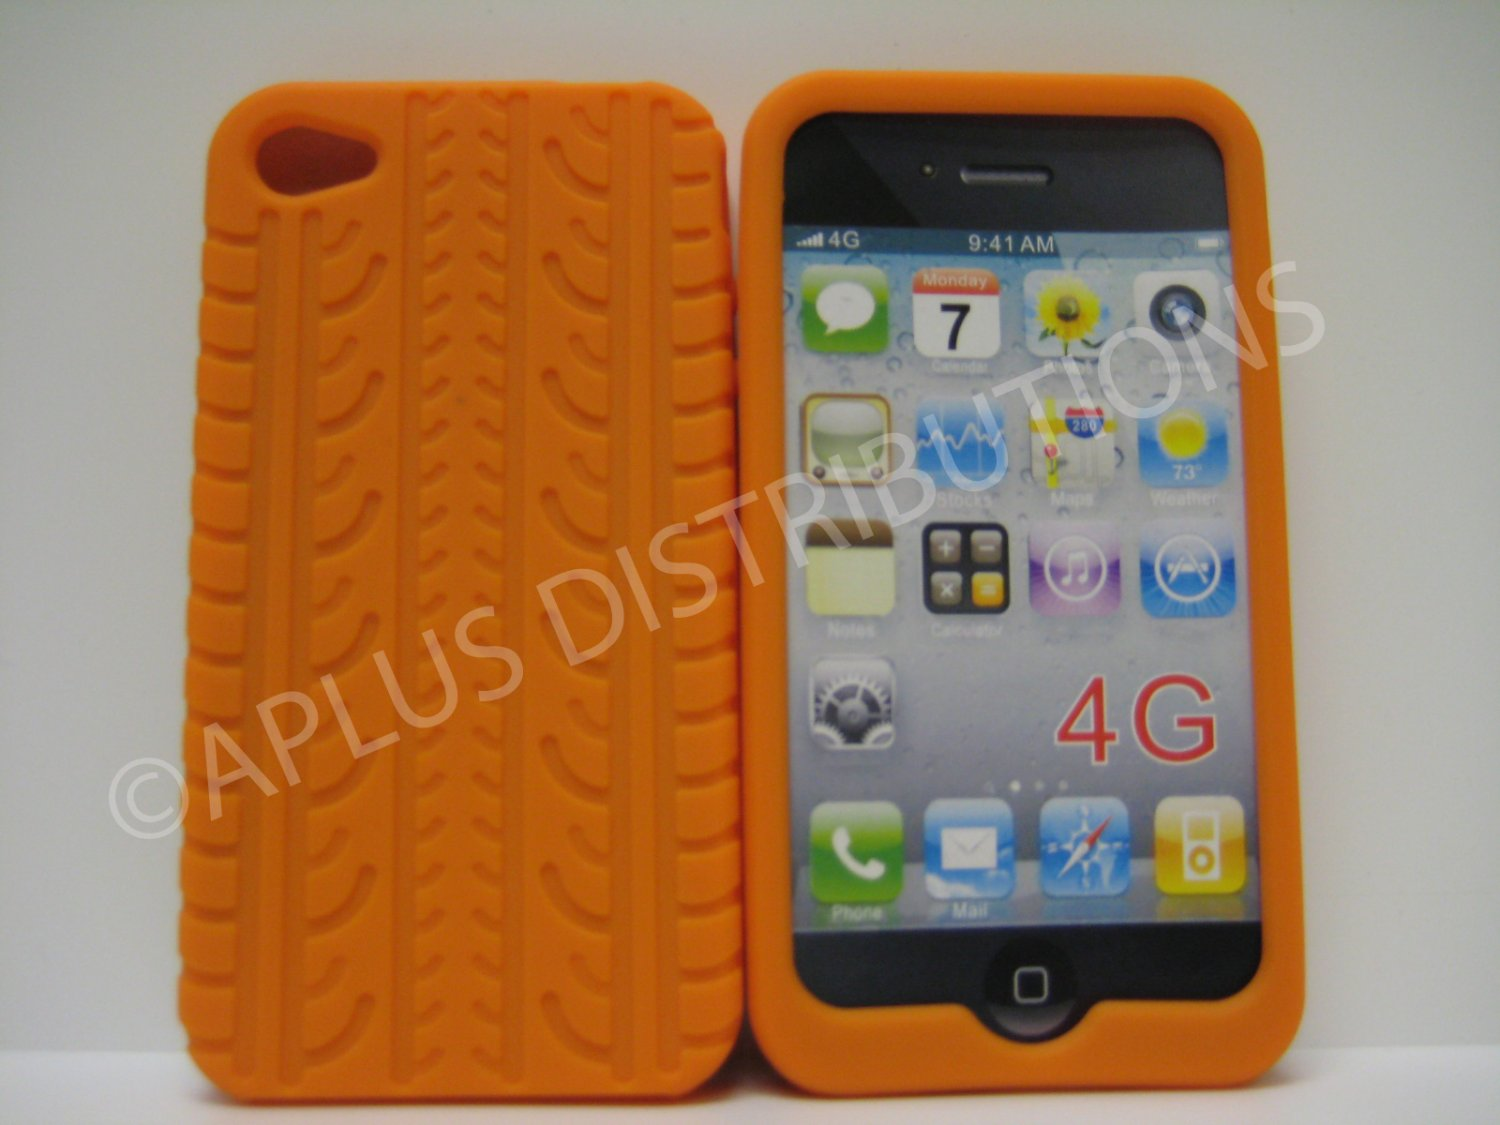 New Orange Tire Print Pattern Silicone Cover For iPhone 4 - (0128)